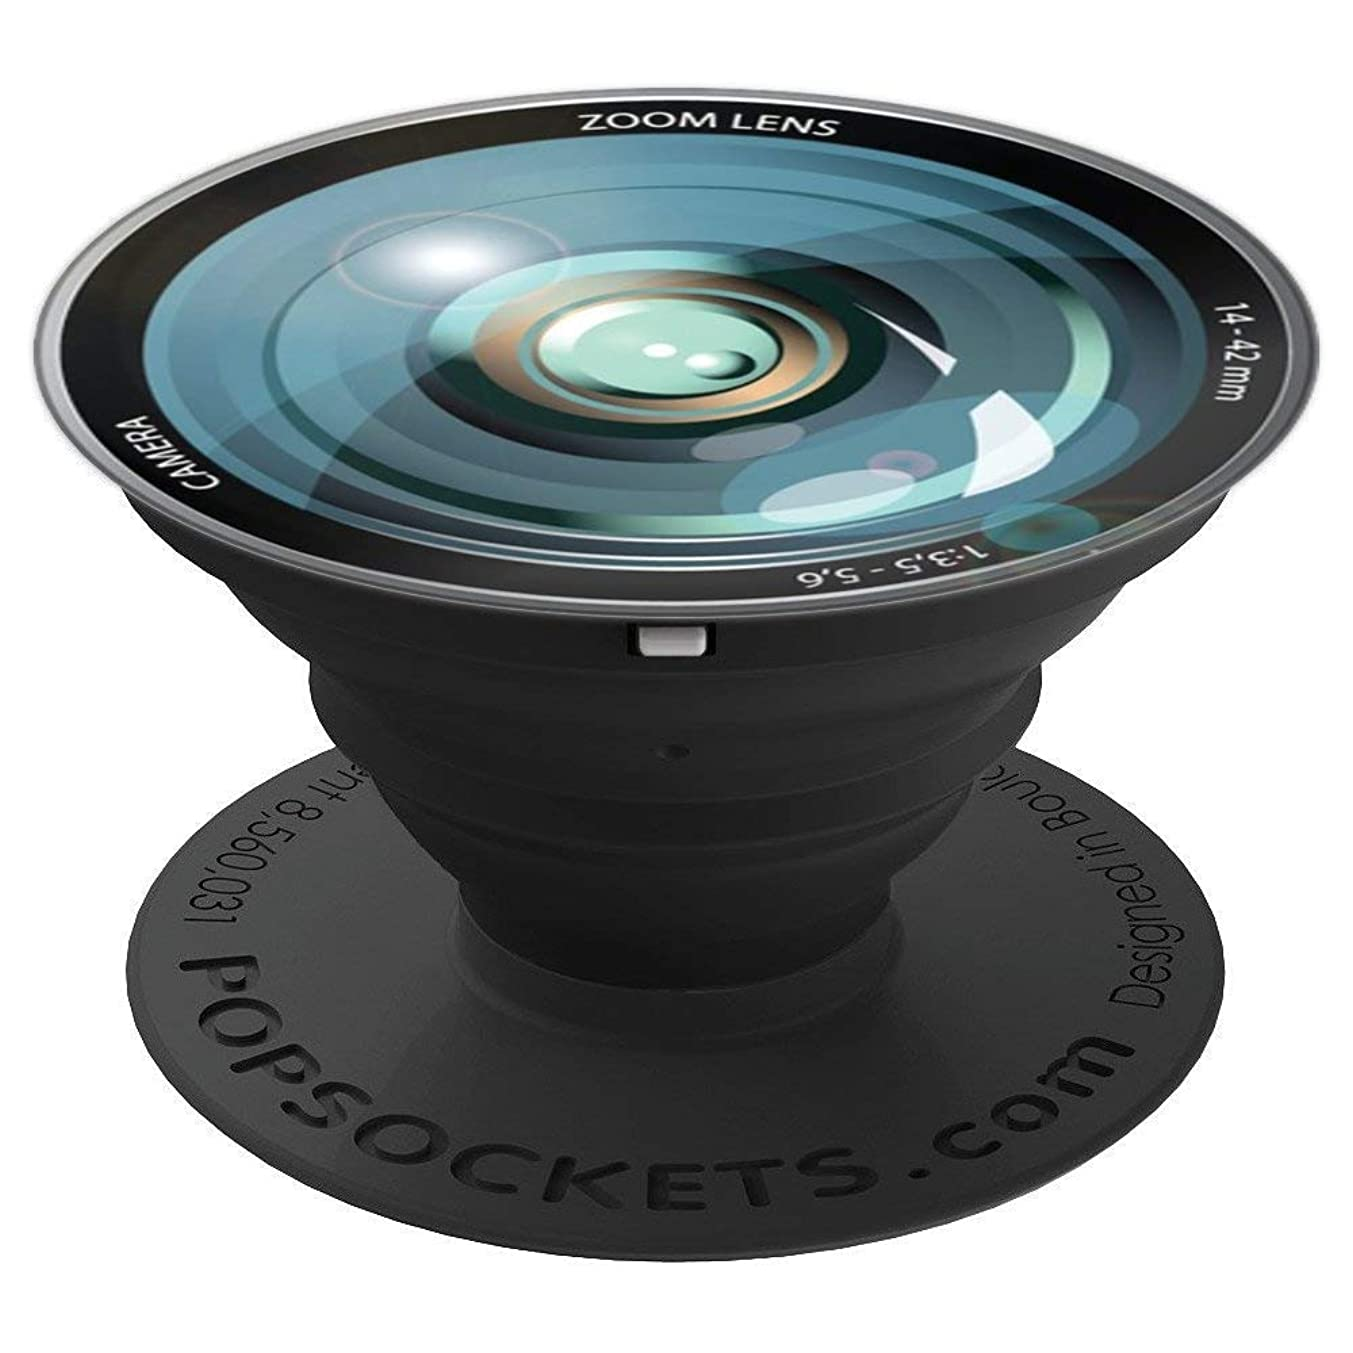 Cool Zoom Camera Lens - PopSockets Grip and Stand for Phones and Tablets